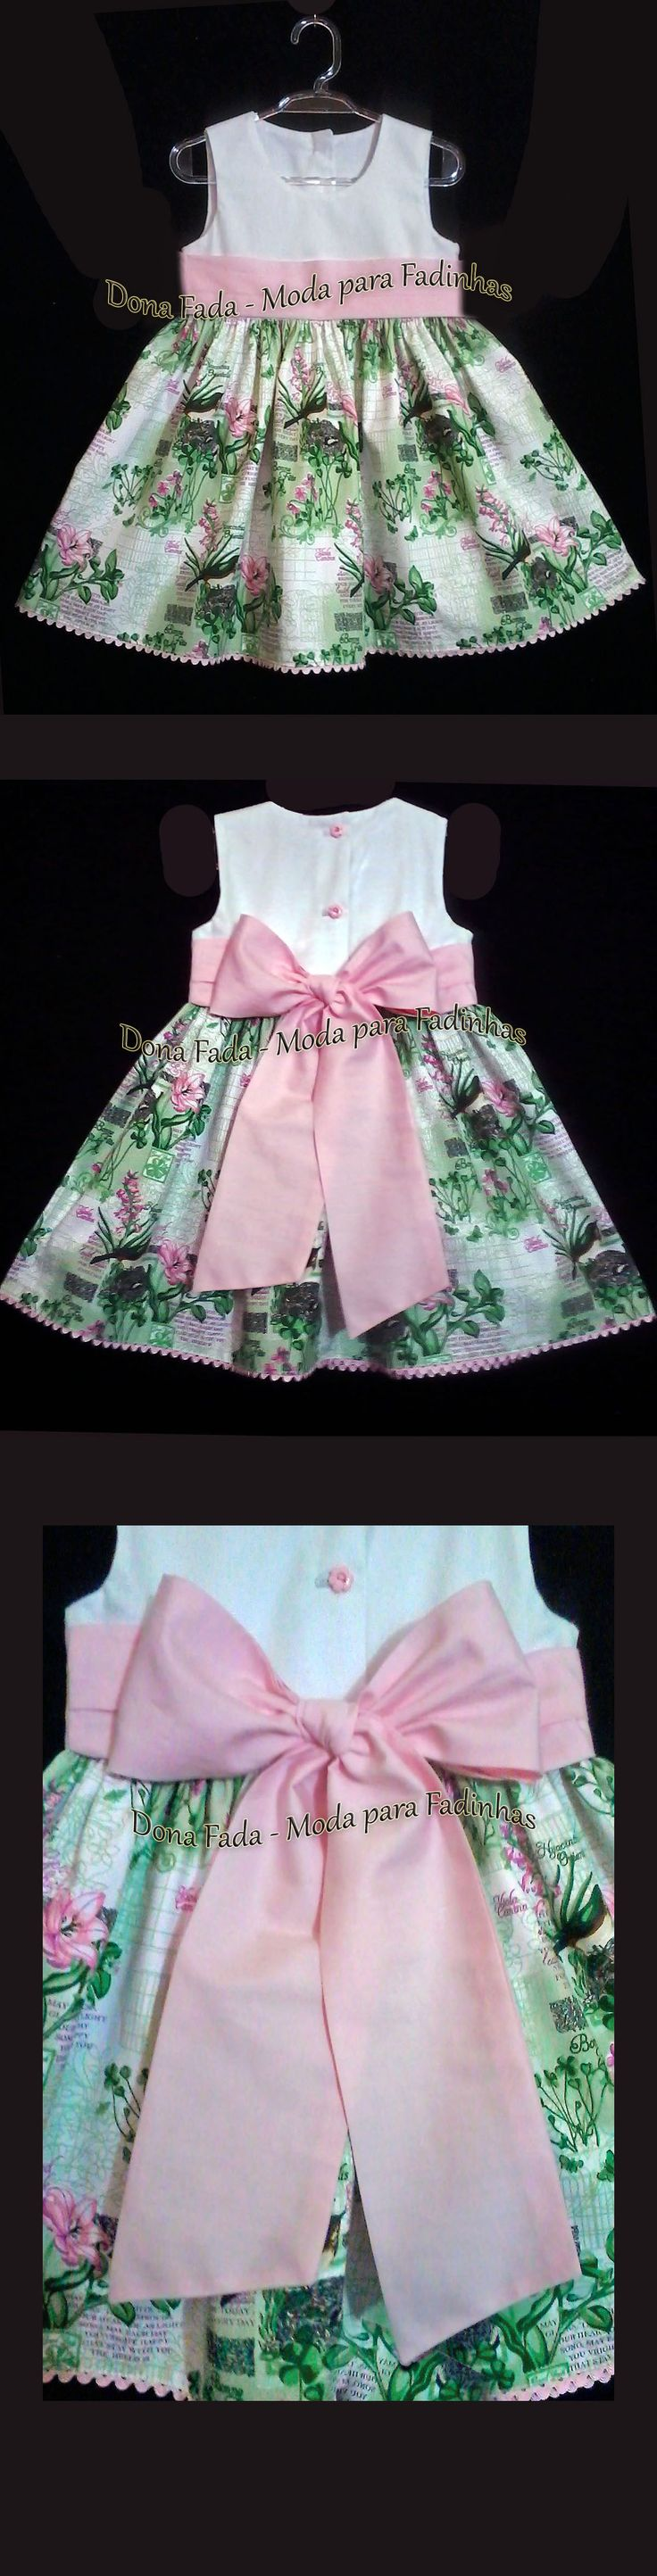 Vestido Verde, Branco e  Rosa - 2 anos  - - - - - baby - infant - toddler - kids - clothes for girls - - - https://www.facebook.com/dona.fada.moda.para.fadinhas/